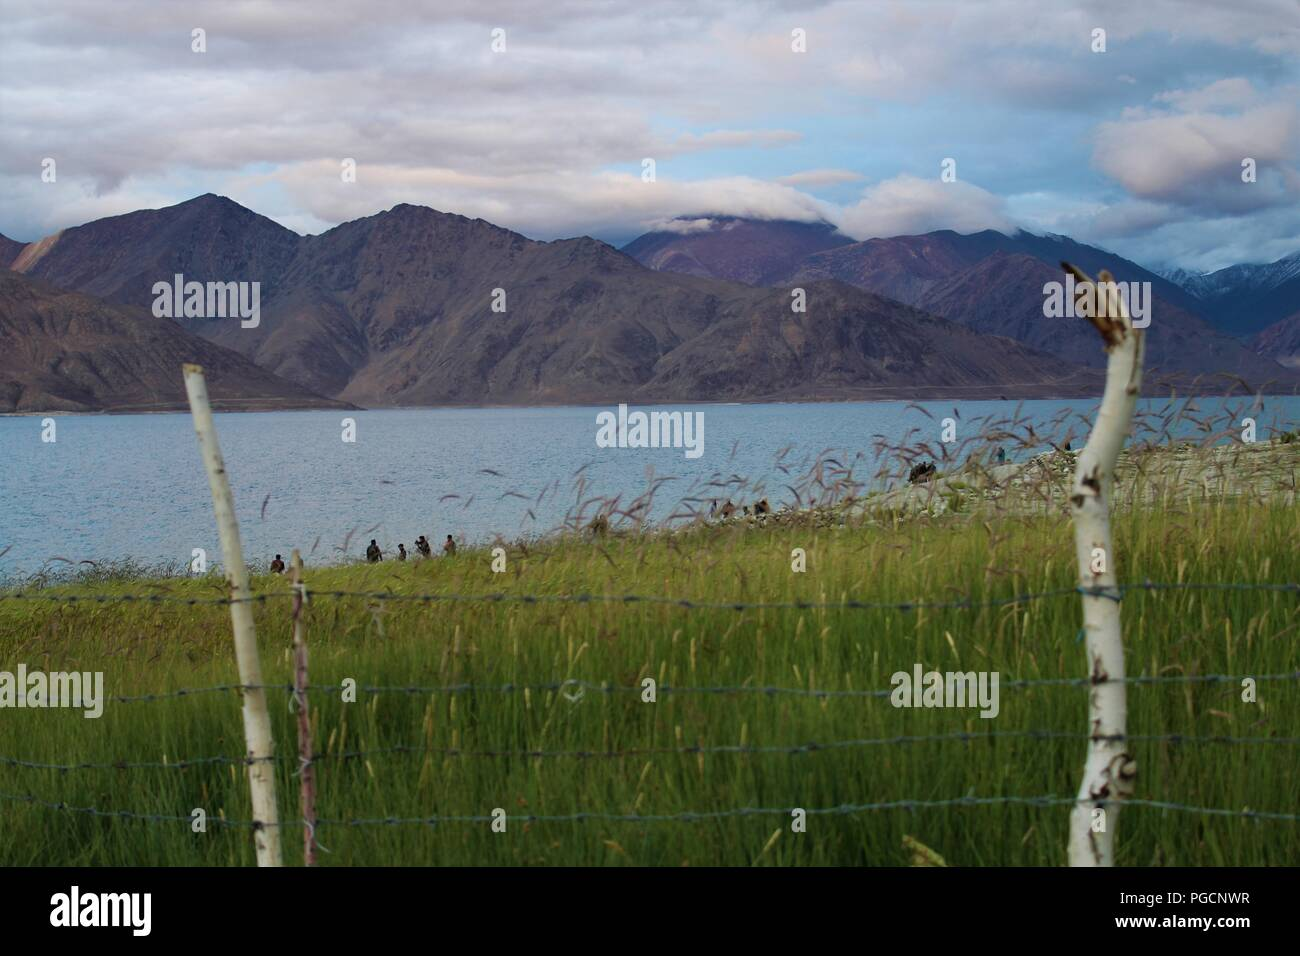 'Pengong Lake'. Fencing is always representative of Human limitations. We cant limit the Mother Nature. - Stock Image